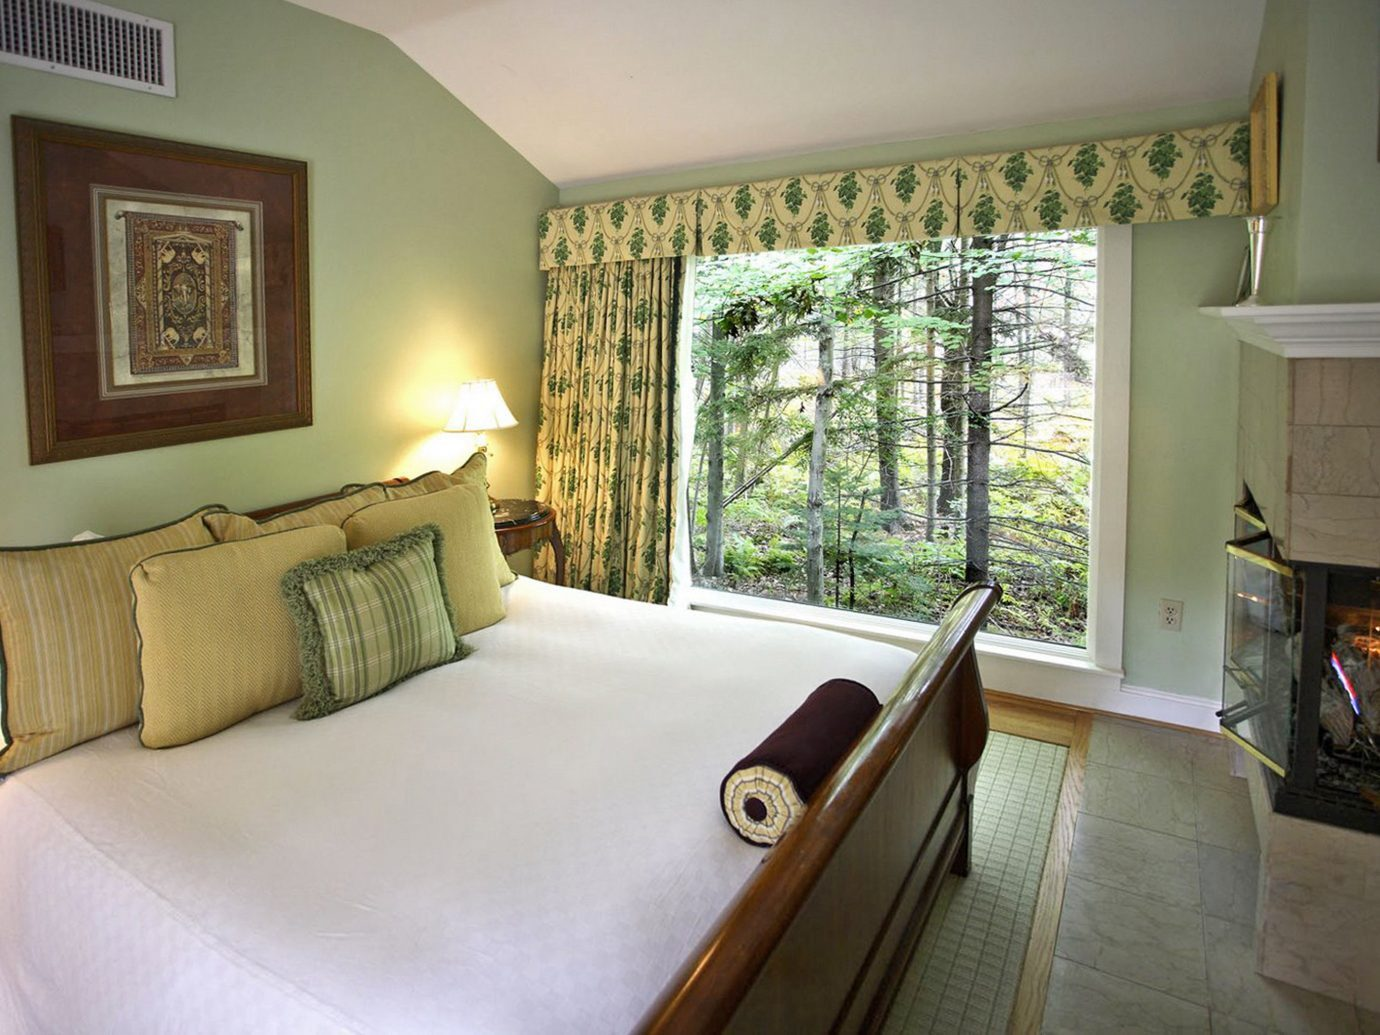 Bedroom at The White Barn Inn and Spa